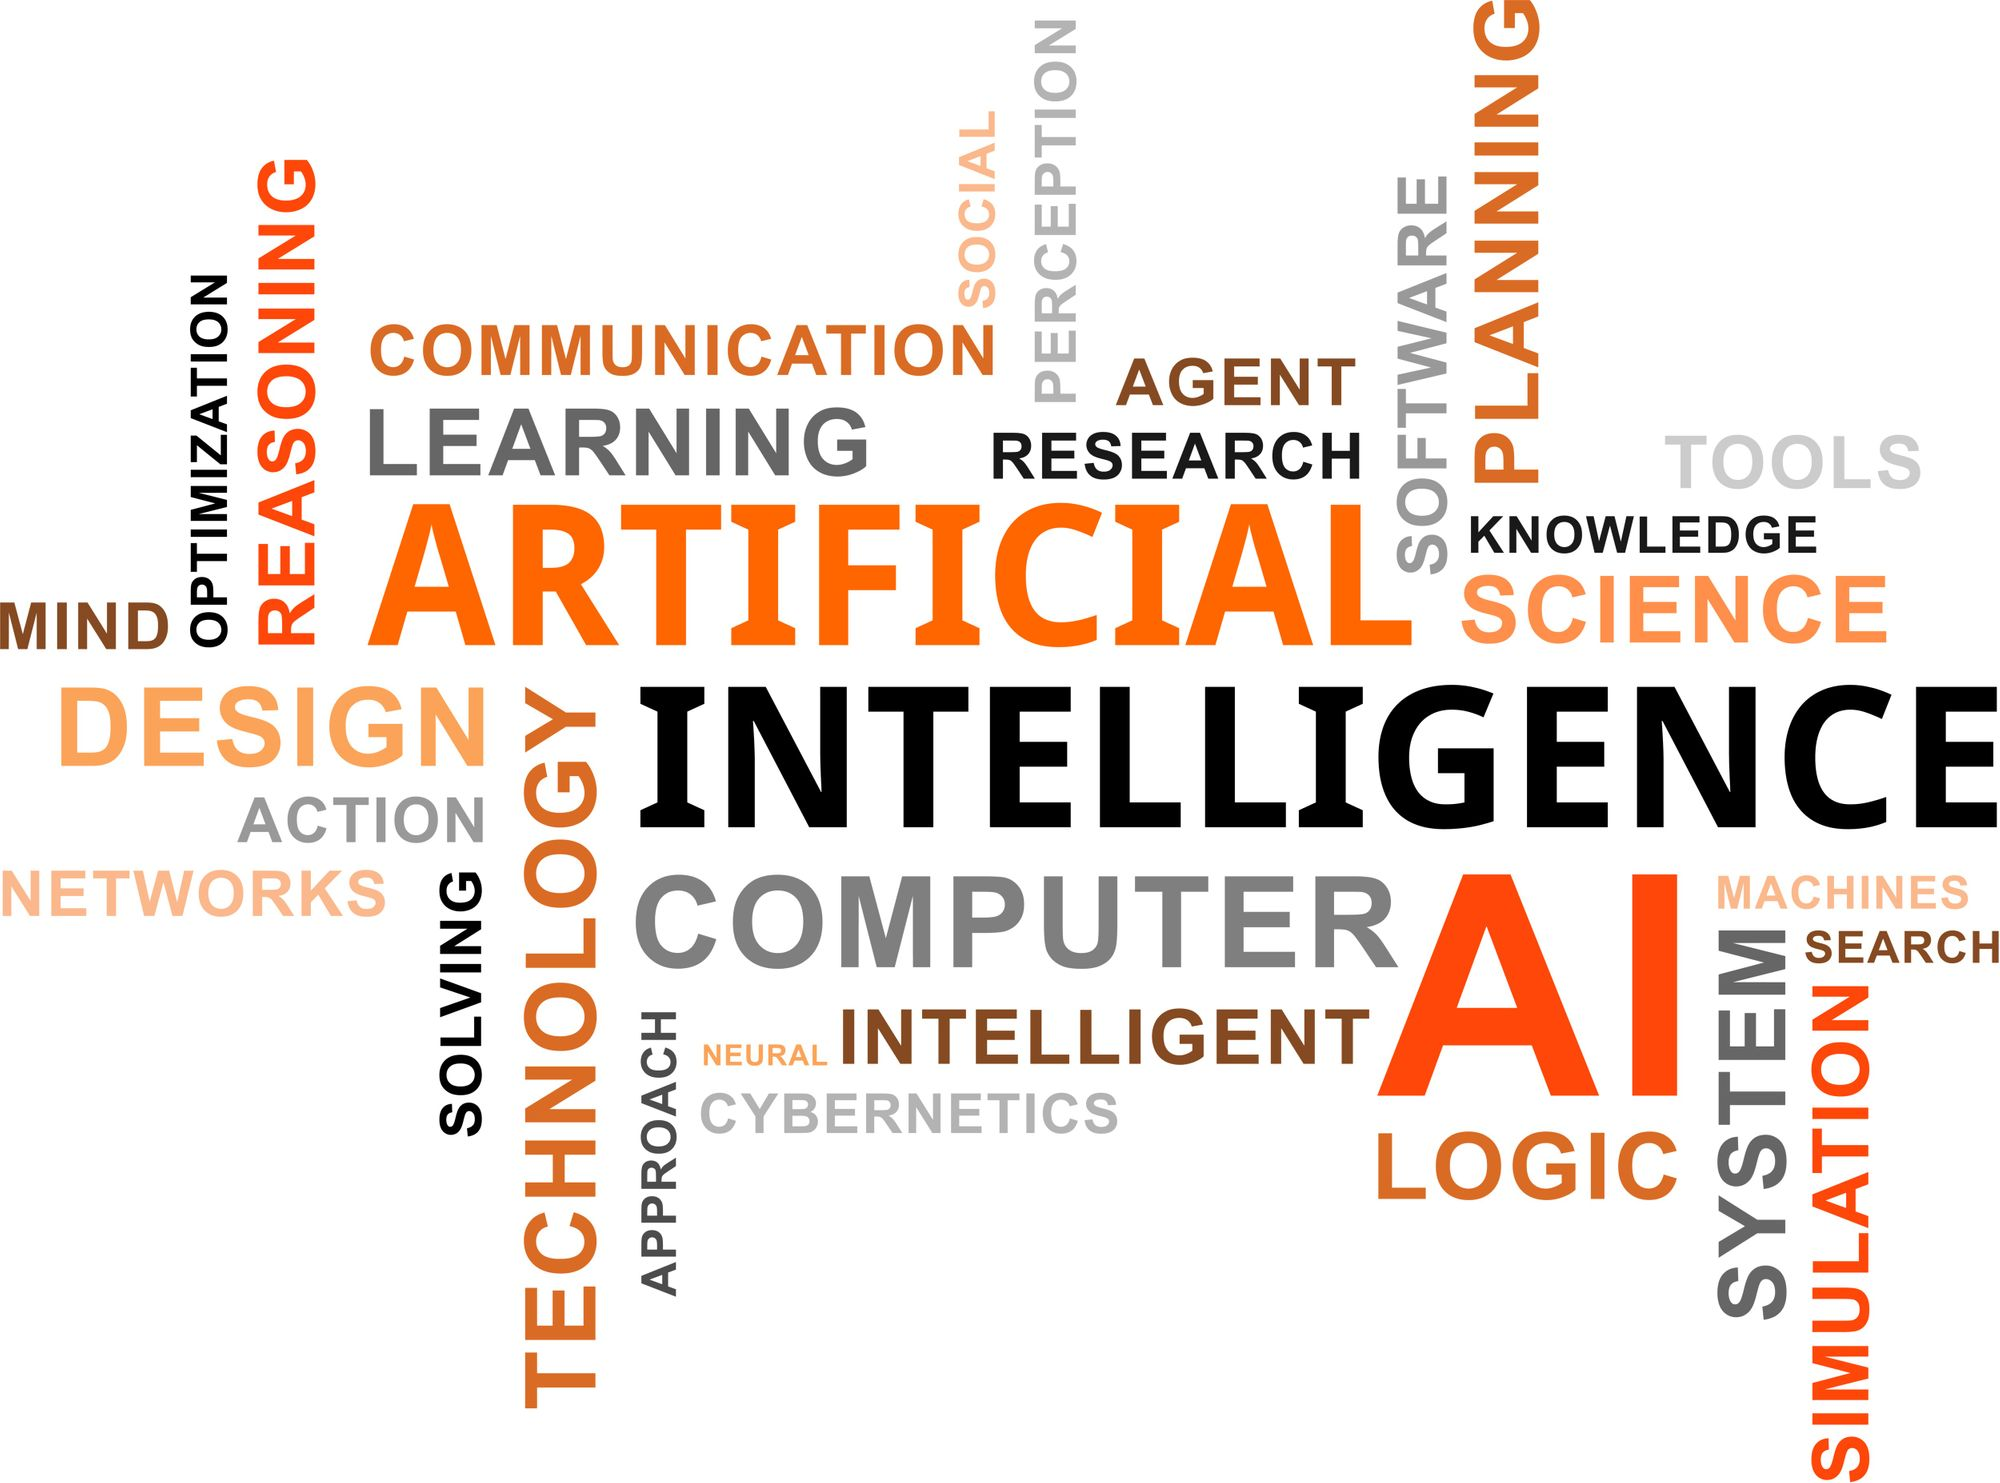 12 Best Artificial Intelligence Tutorials & Courses - Learn AI Online